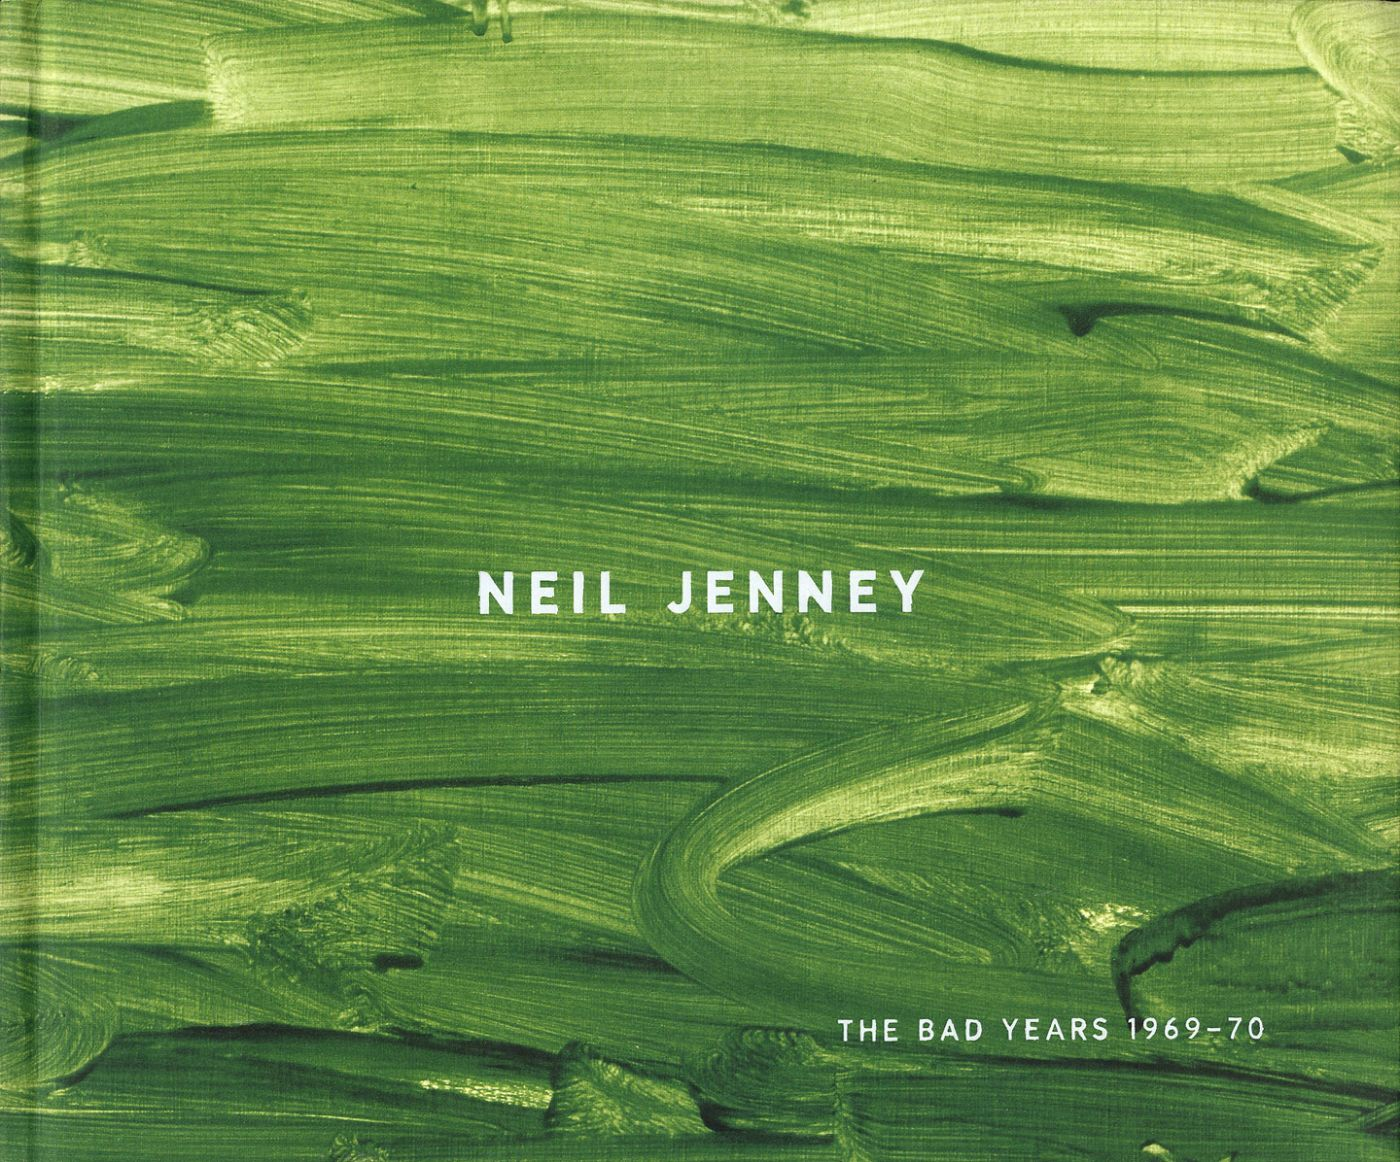 Neil Jenney: The Bad Years 1969-1970